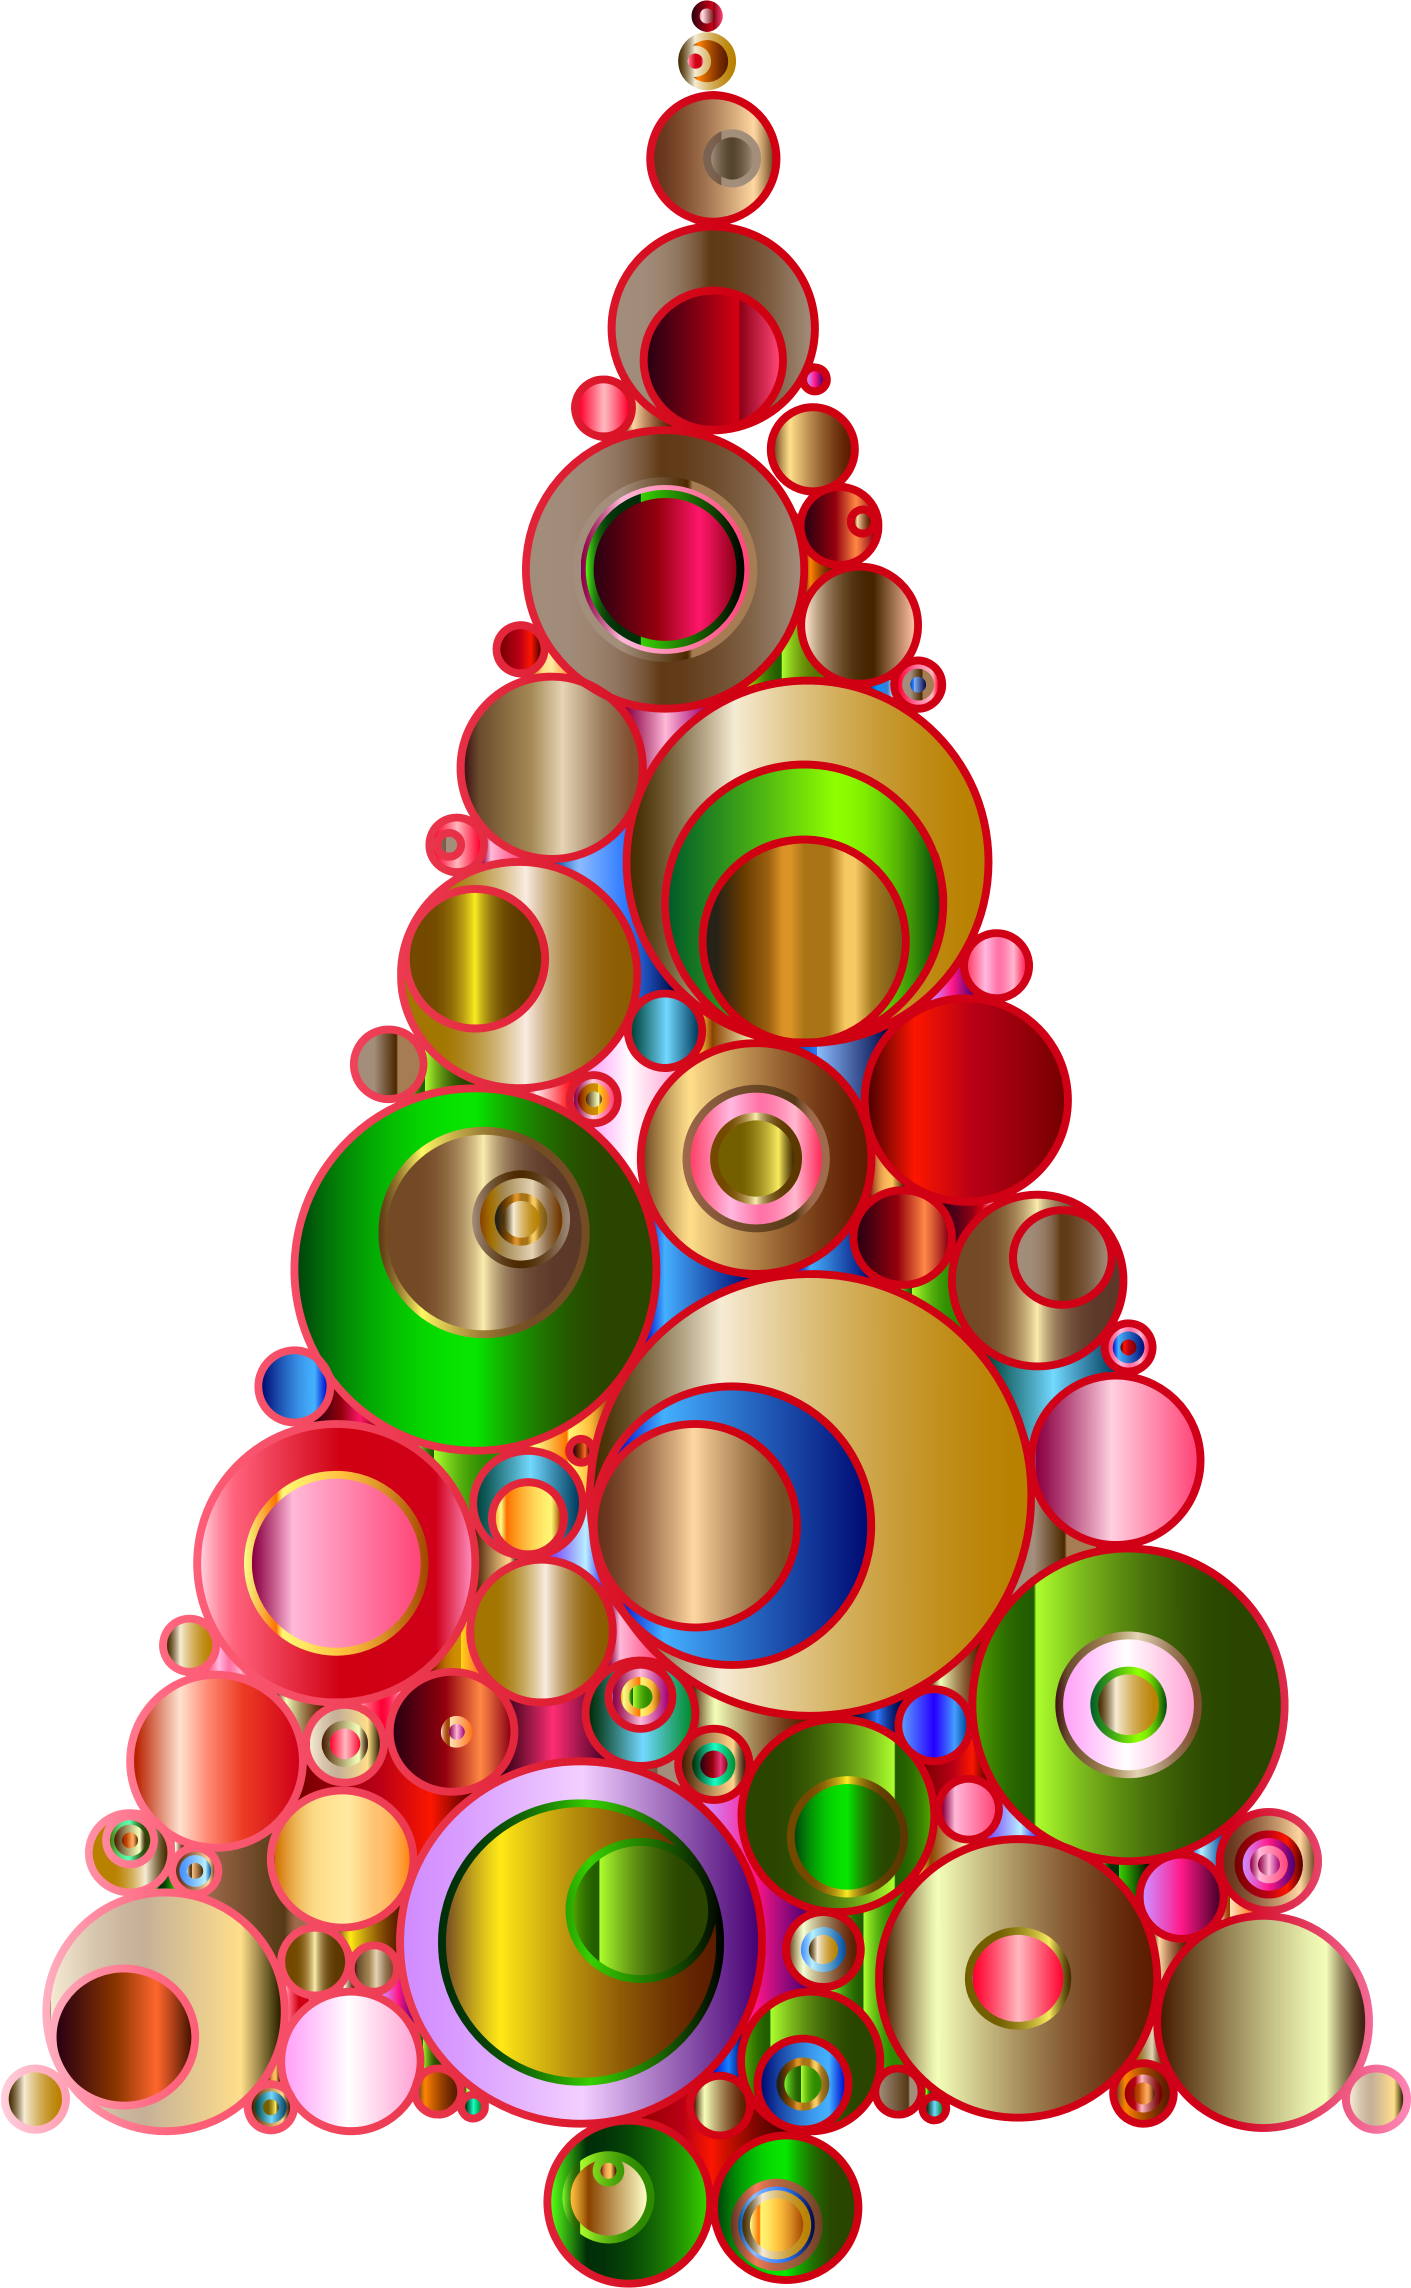 Christmas Tree clipart abstract Circles 2 Abstract 2 Colorful